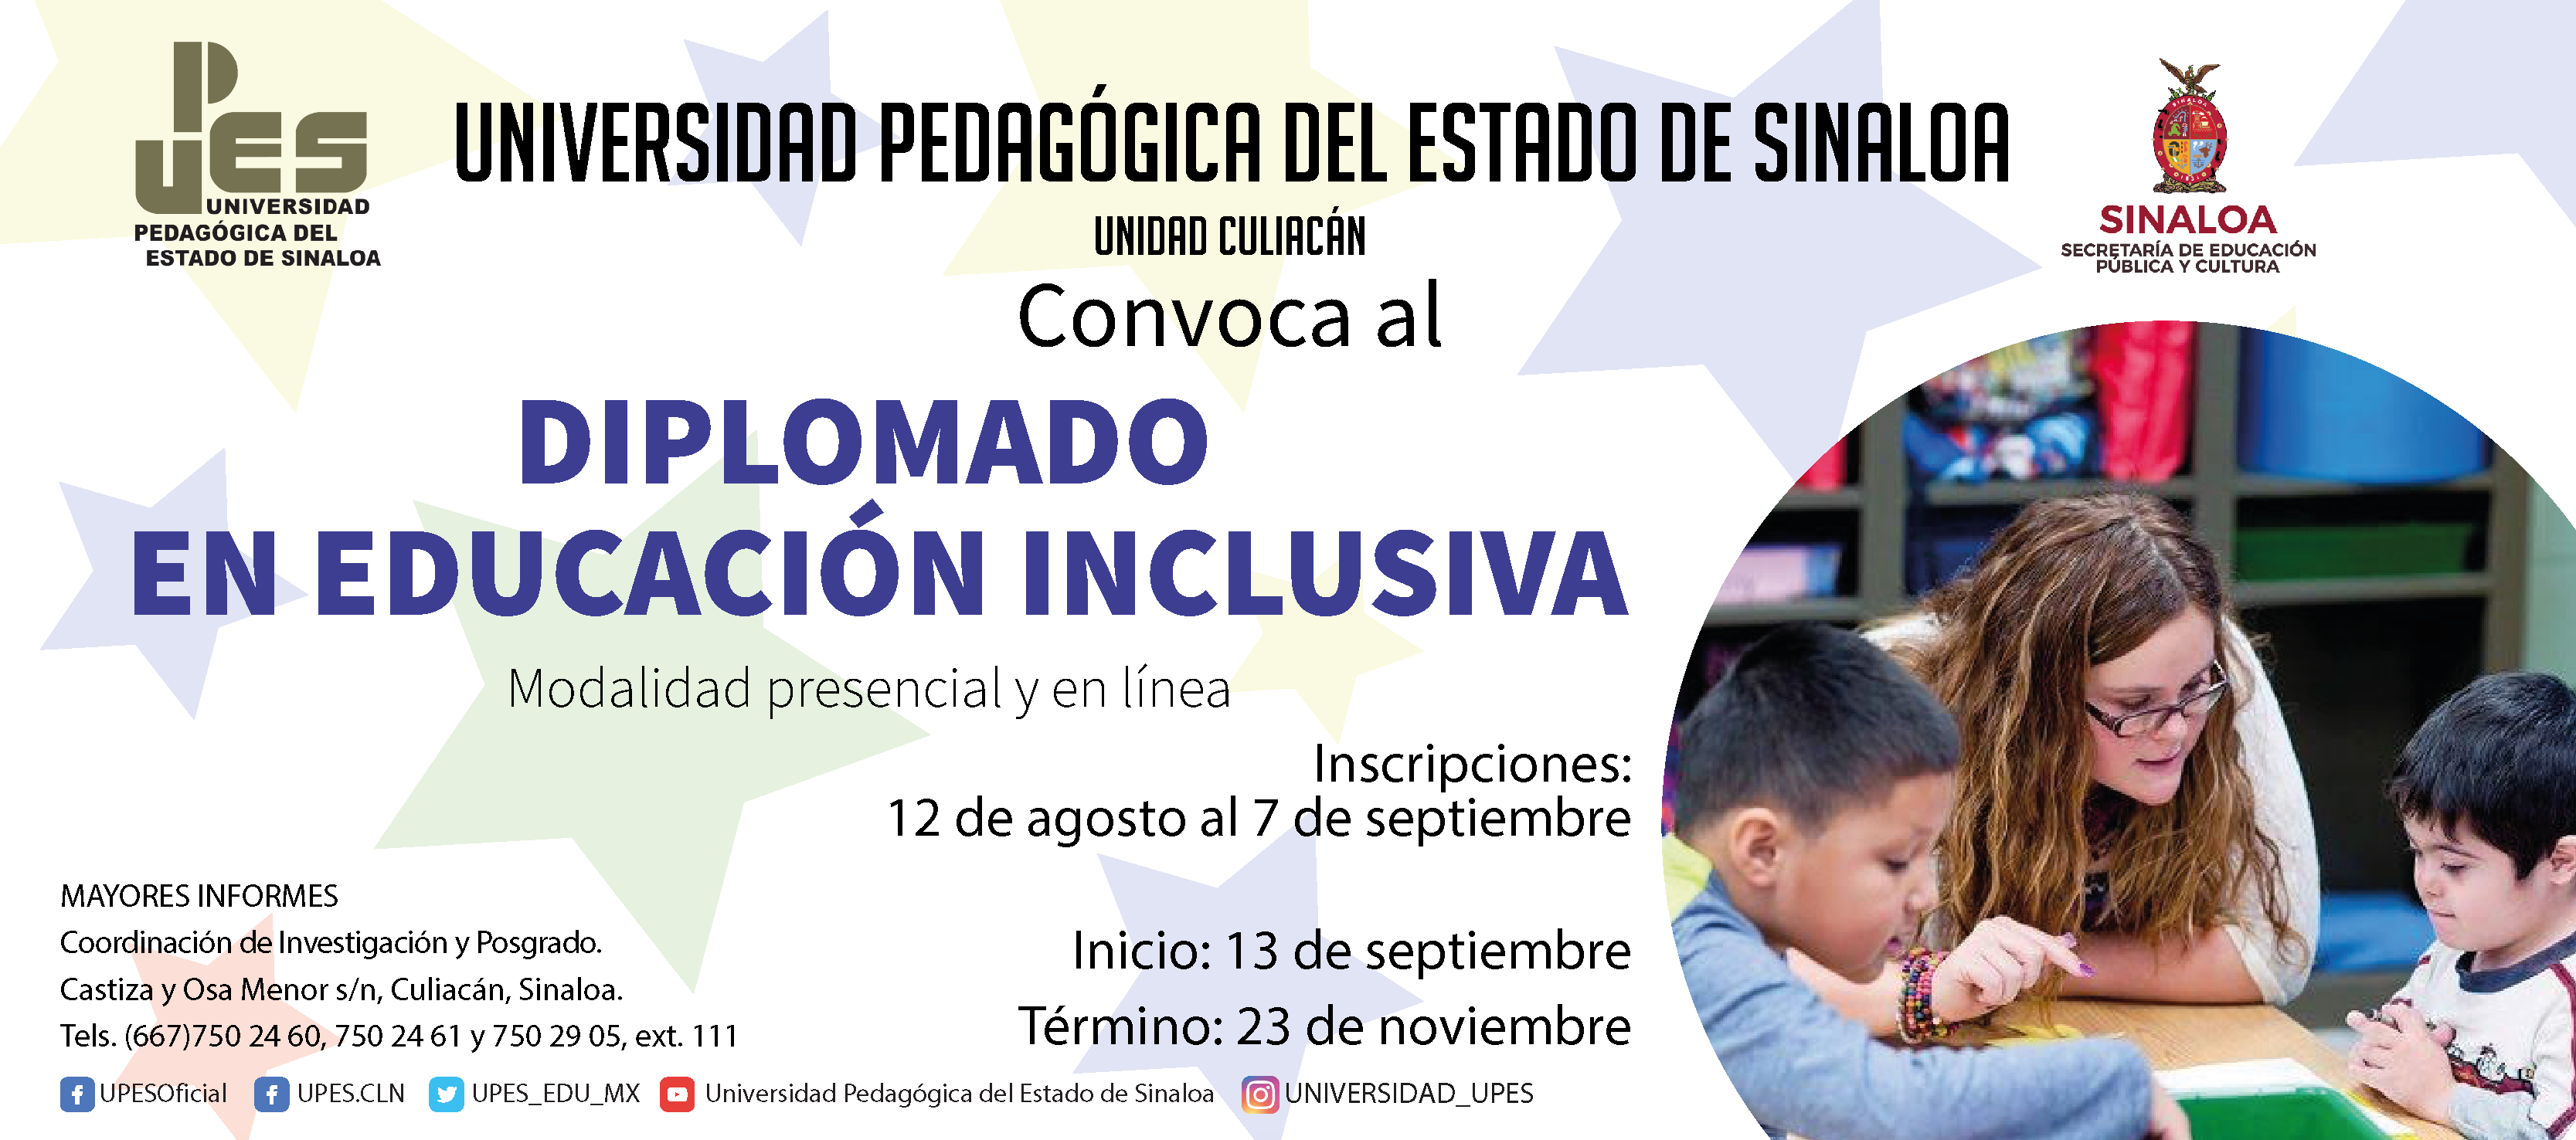 convocatoria-Diplomado-en-educacion-inclusiva-slider